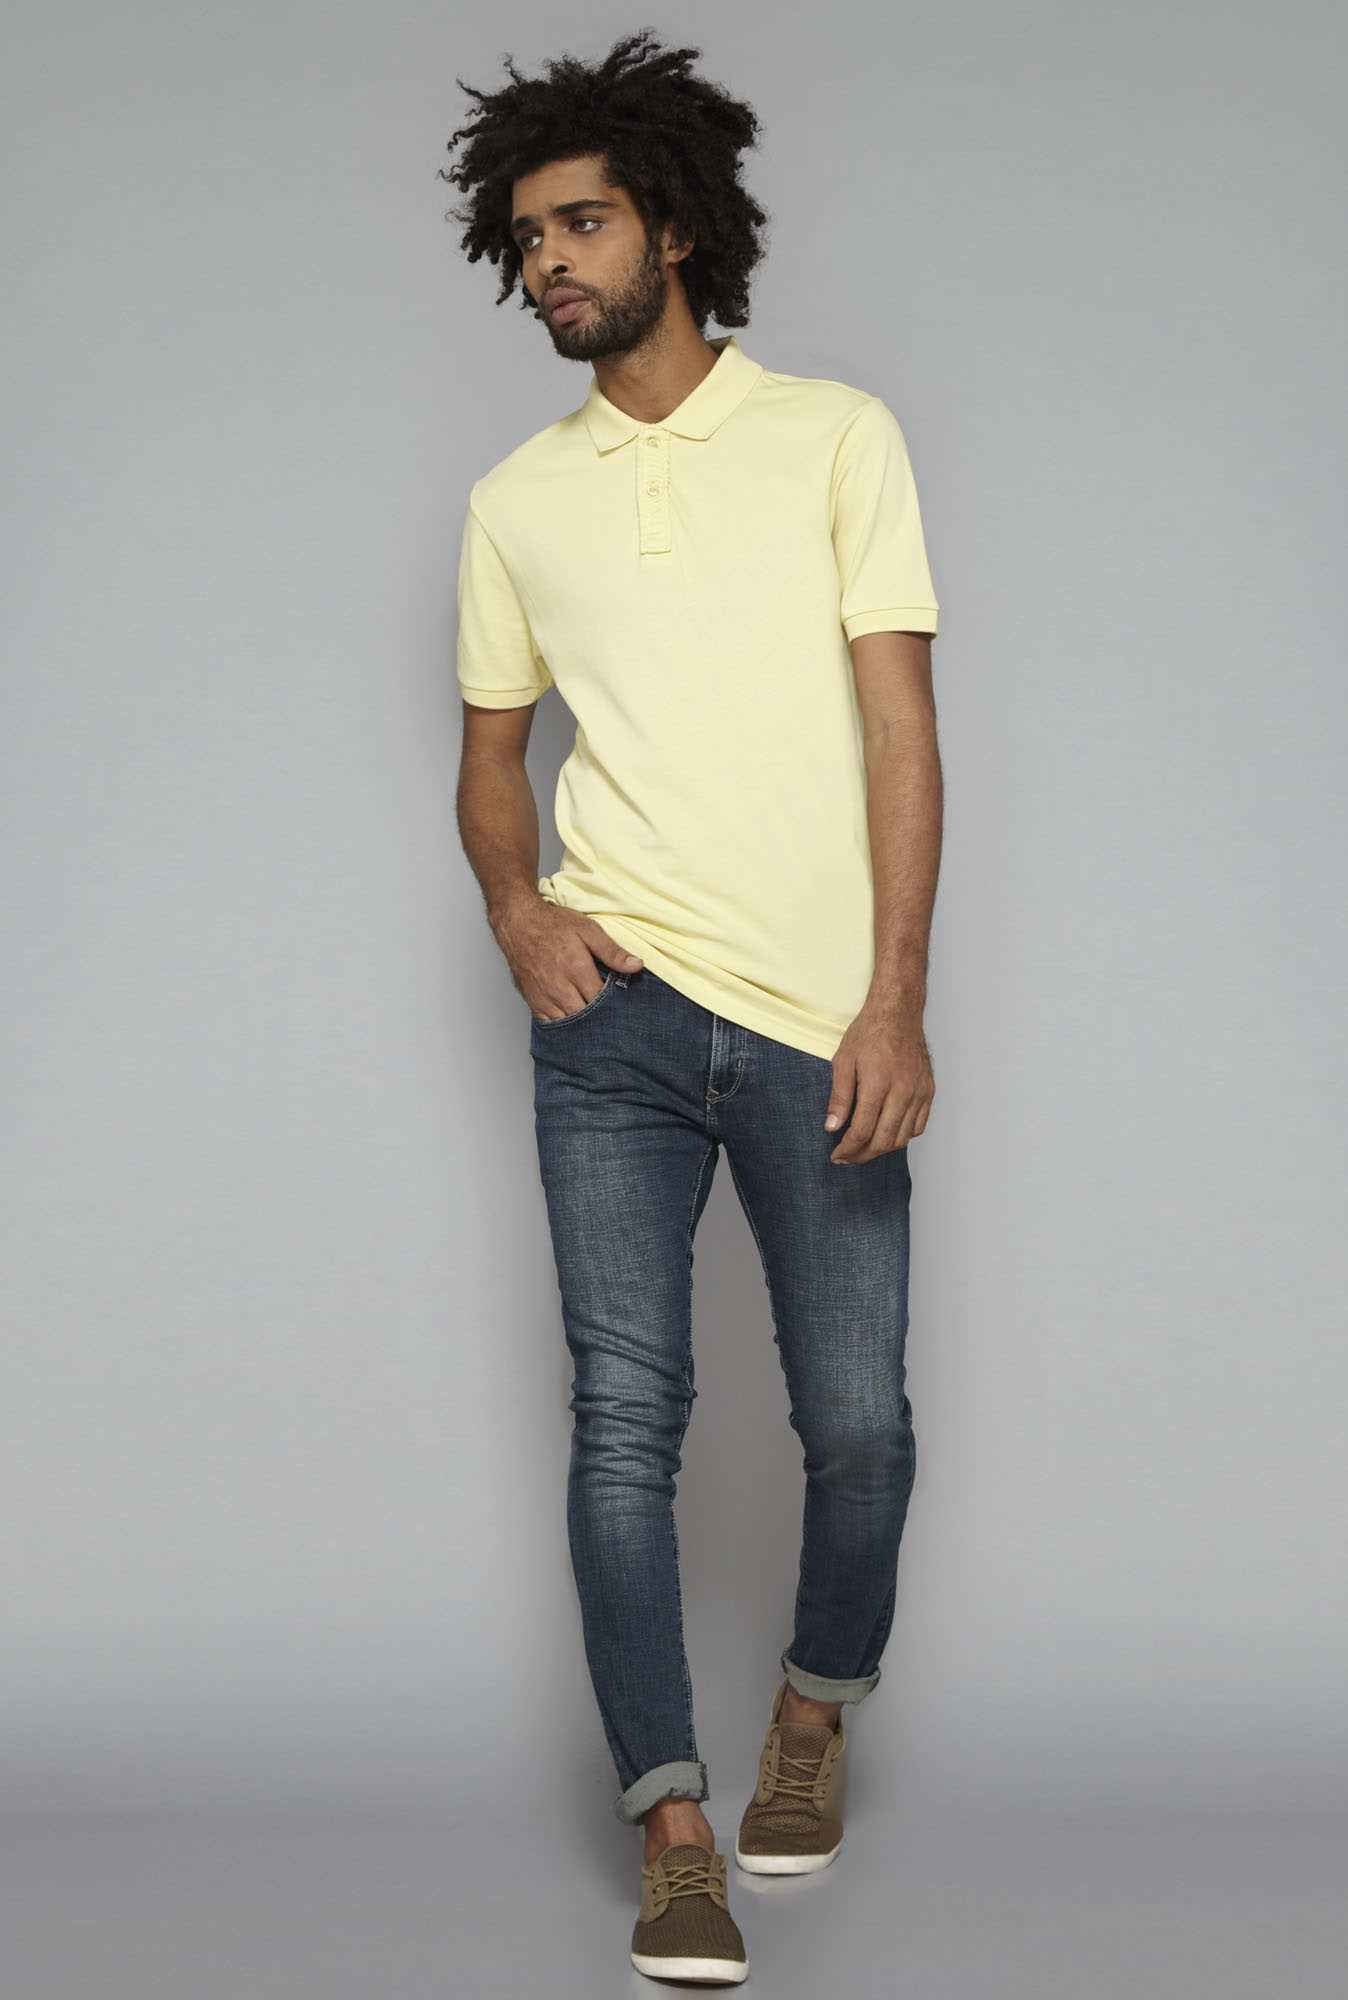 Nuon by Westside Yellow Polo T Shirt